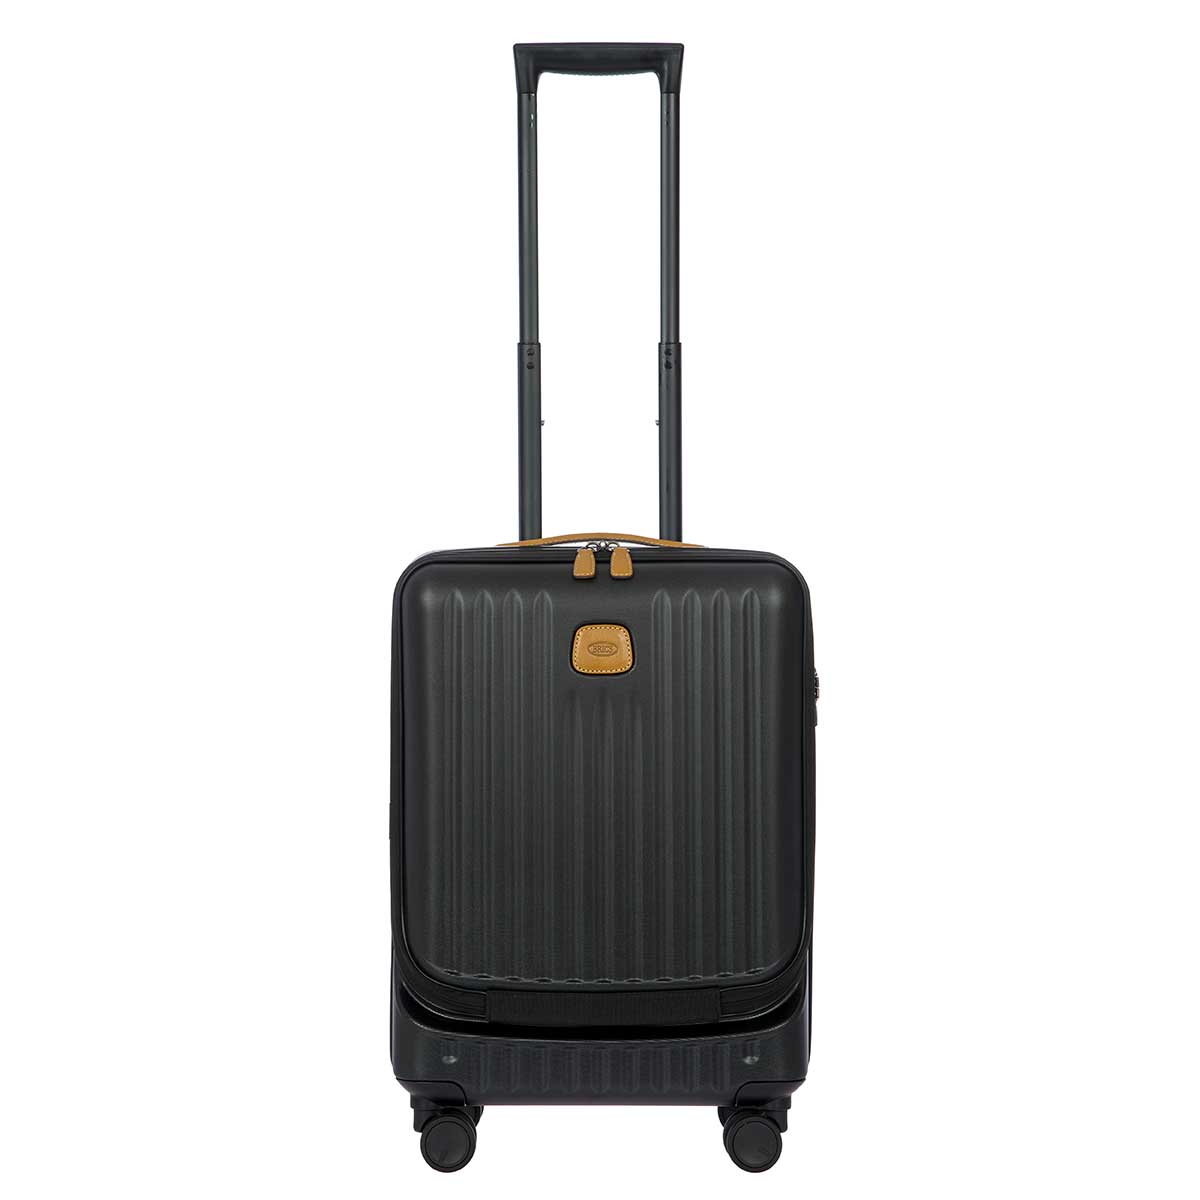 Capri 540mm Carry-On Spinner